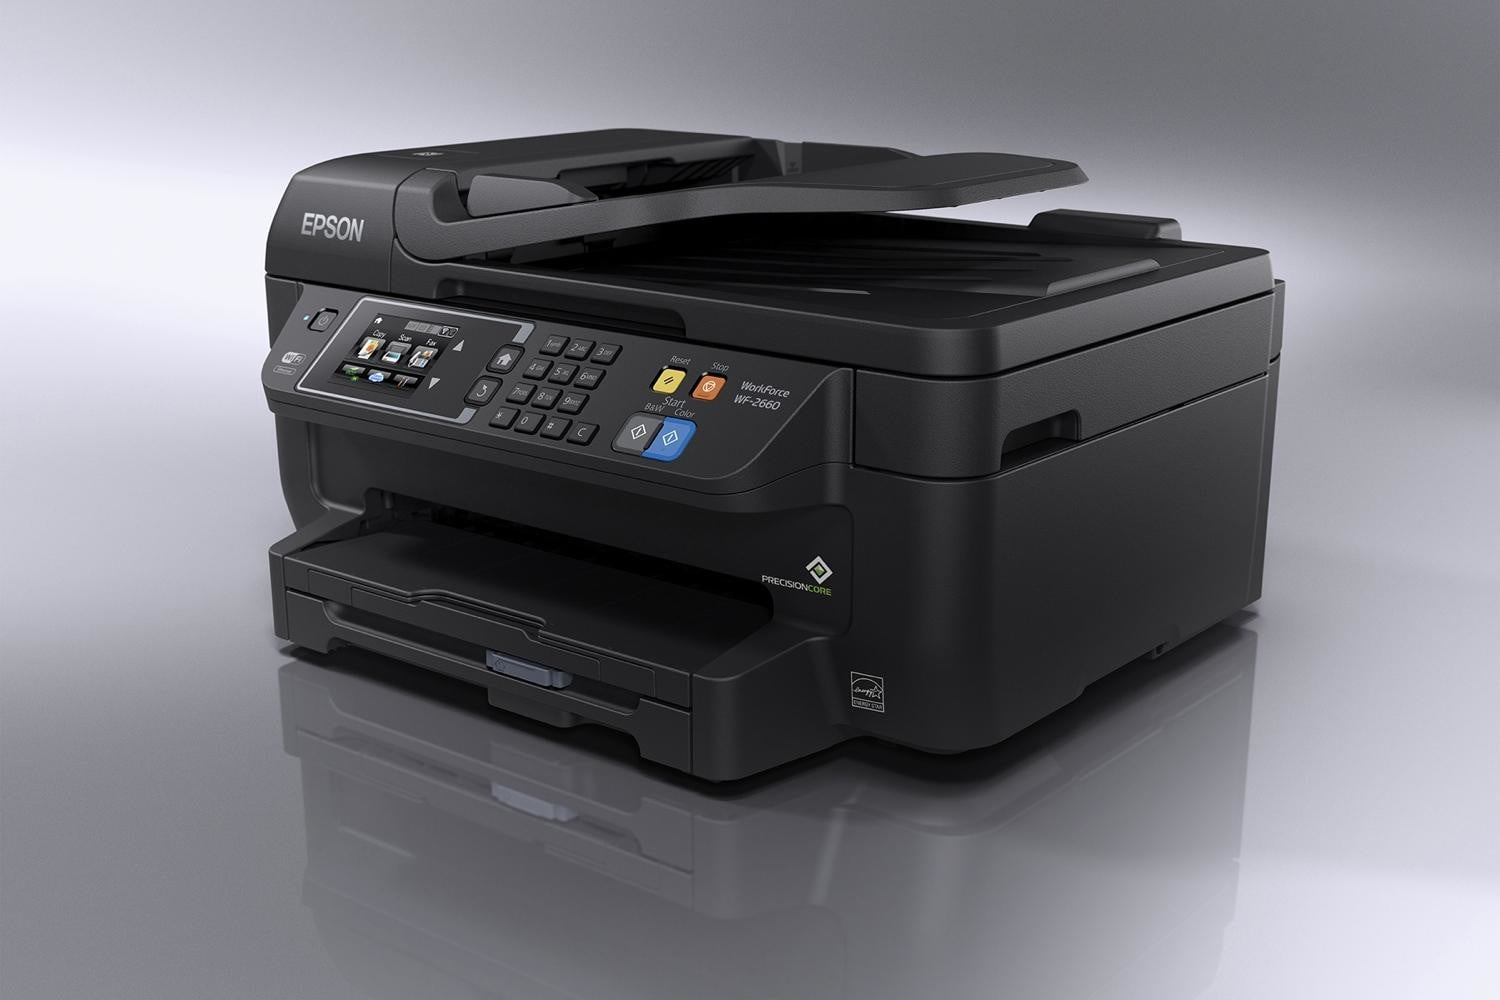 Epson Unveils New Printers with PrecisionCore Inkjet Tech